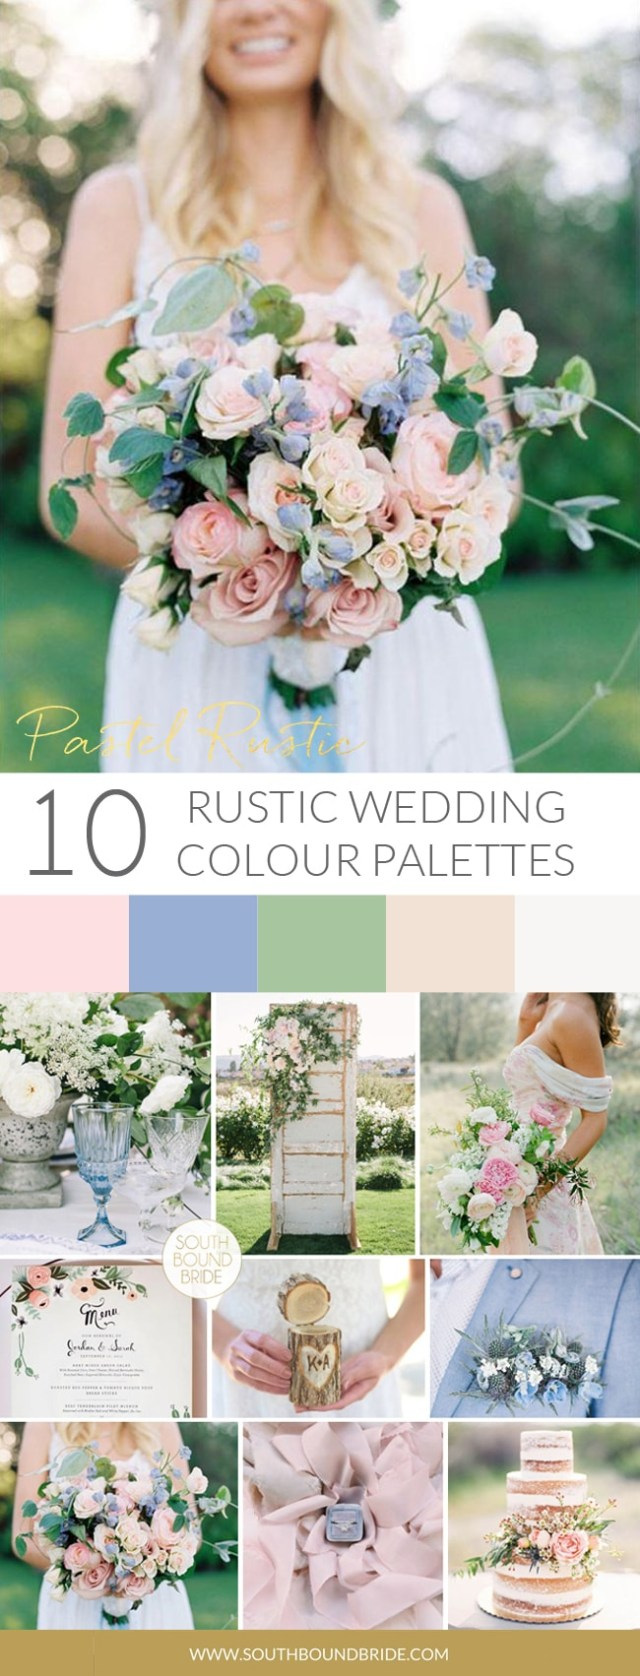 Rustic Wedding Colors 10 Rustic Wedding Color Palettes Southbound Bride